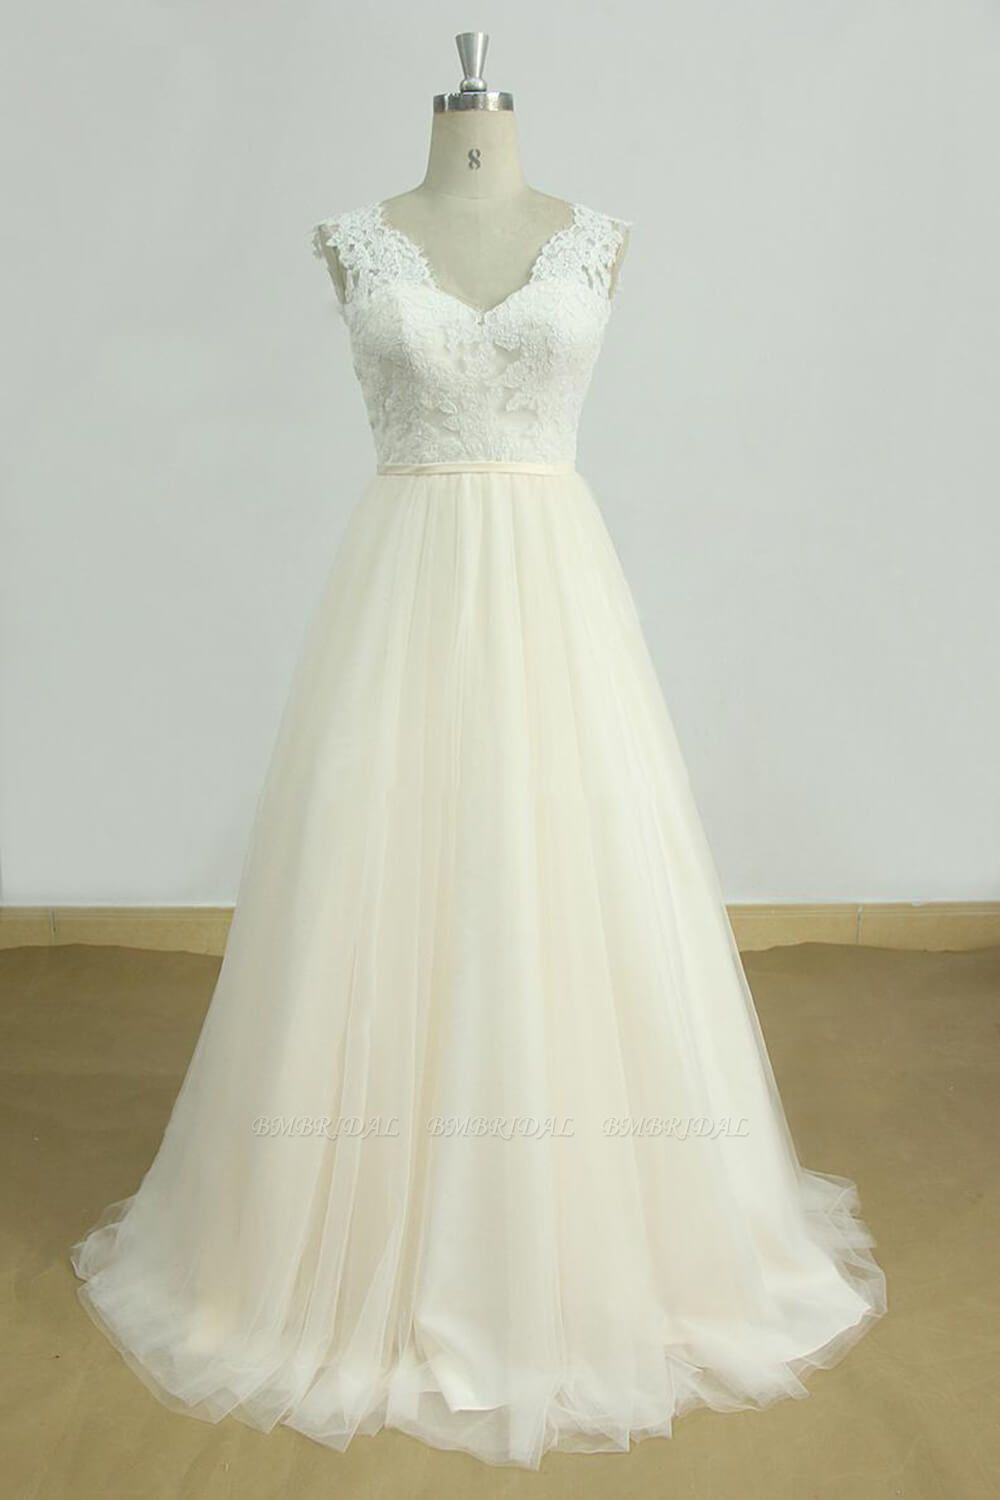 BMbridal Elegant Lace Straps V-neck Appliques Wedding Dress Tulle Ruffles A-line Bridal Gowns On Sale